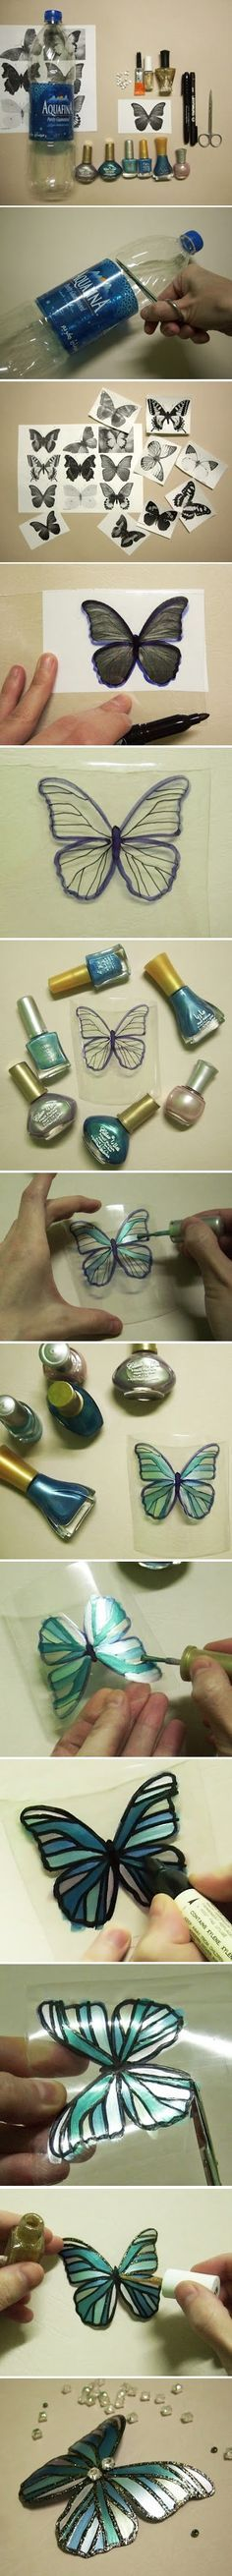 DIY Butterflies Made From Plastic Bottles simple craft for my Pal friends, too !